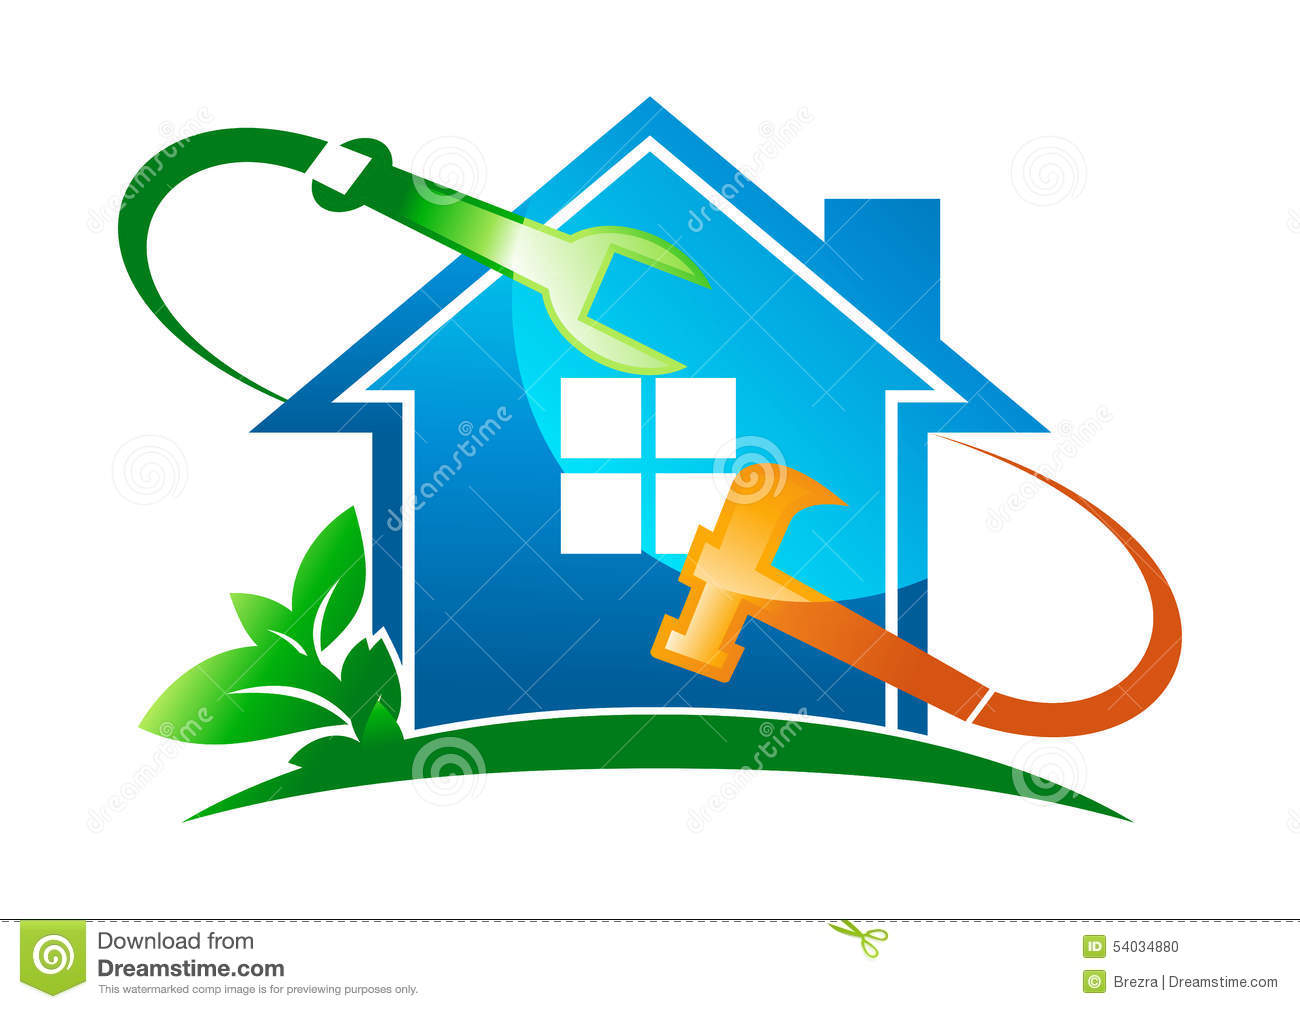 service stock illustrations 386 076 service stock illustrations rh dreamstime com Home Repair Business Logos Home Repair Services Logo